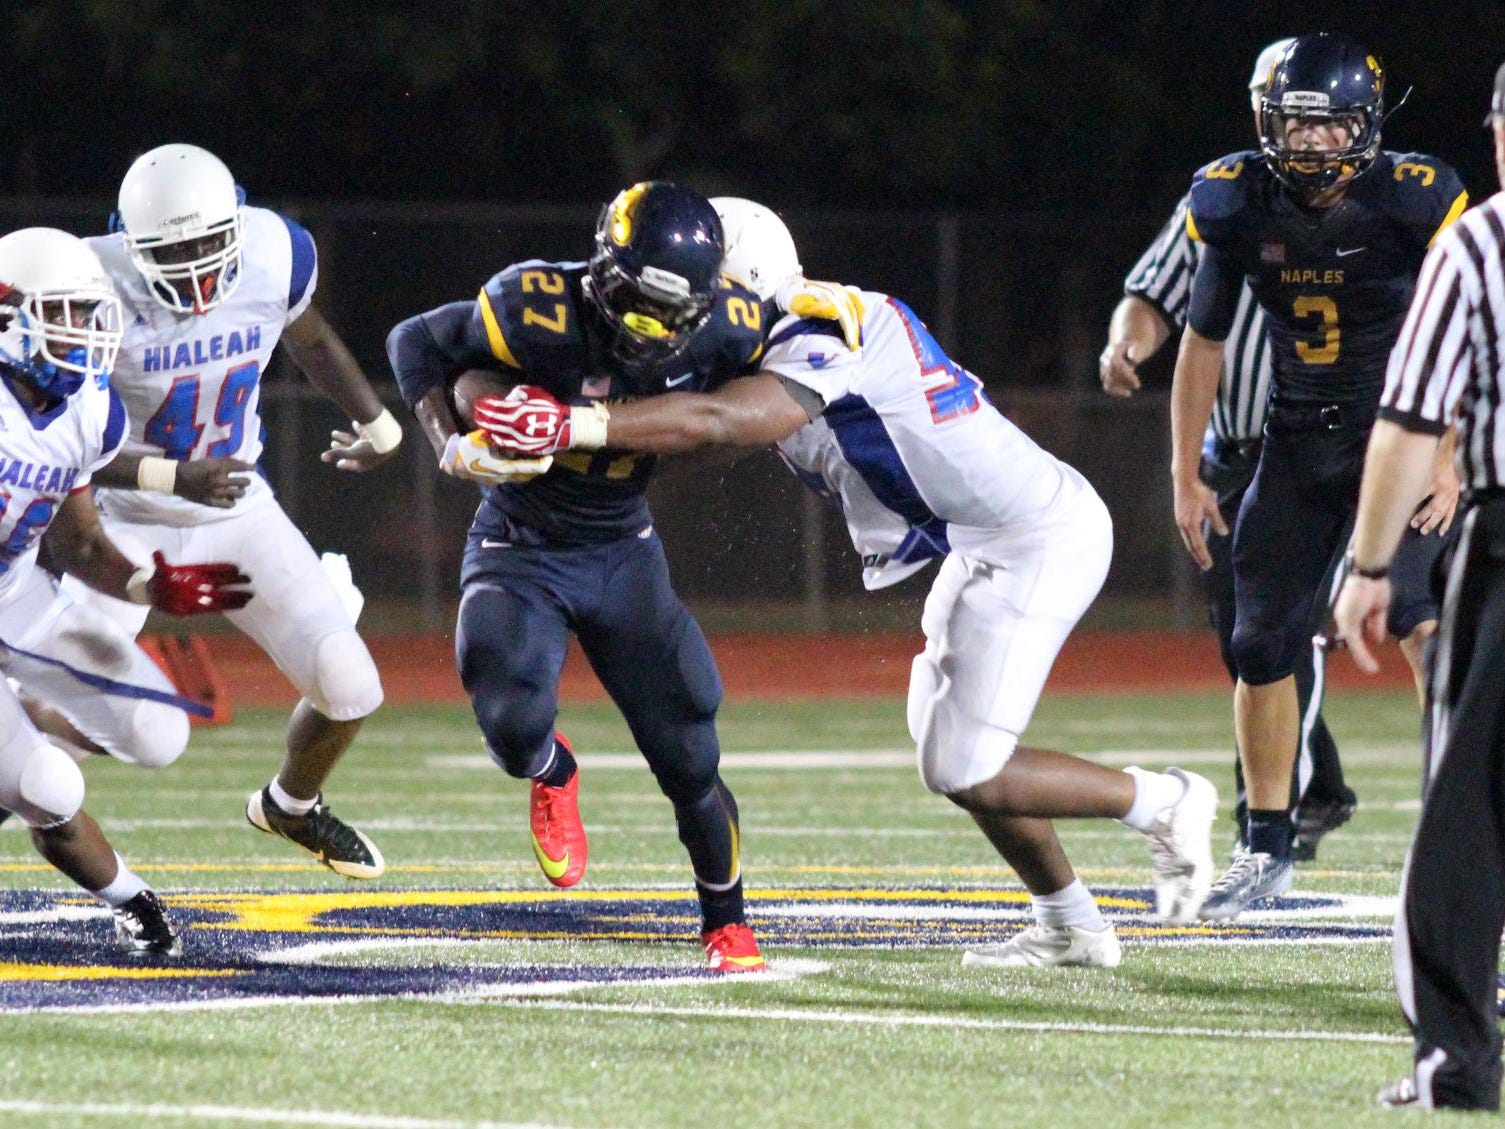 Naples running back Carlin Fils-Aime verbally committed to Tennessee Thursday.